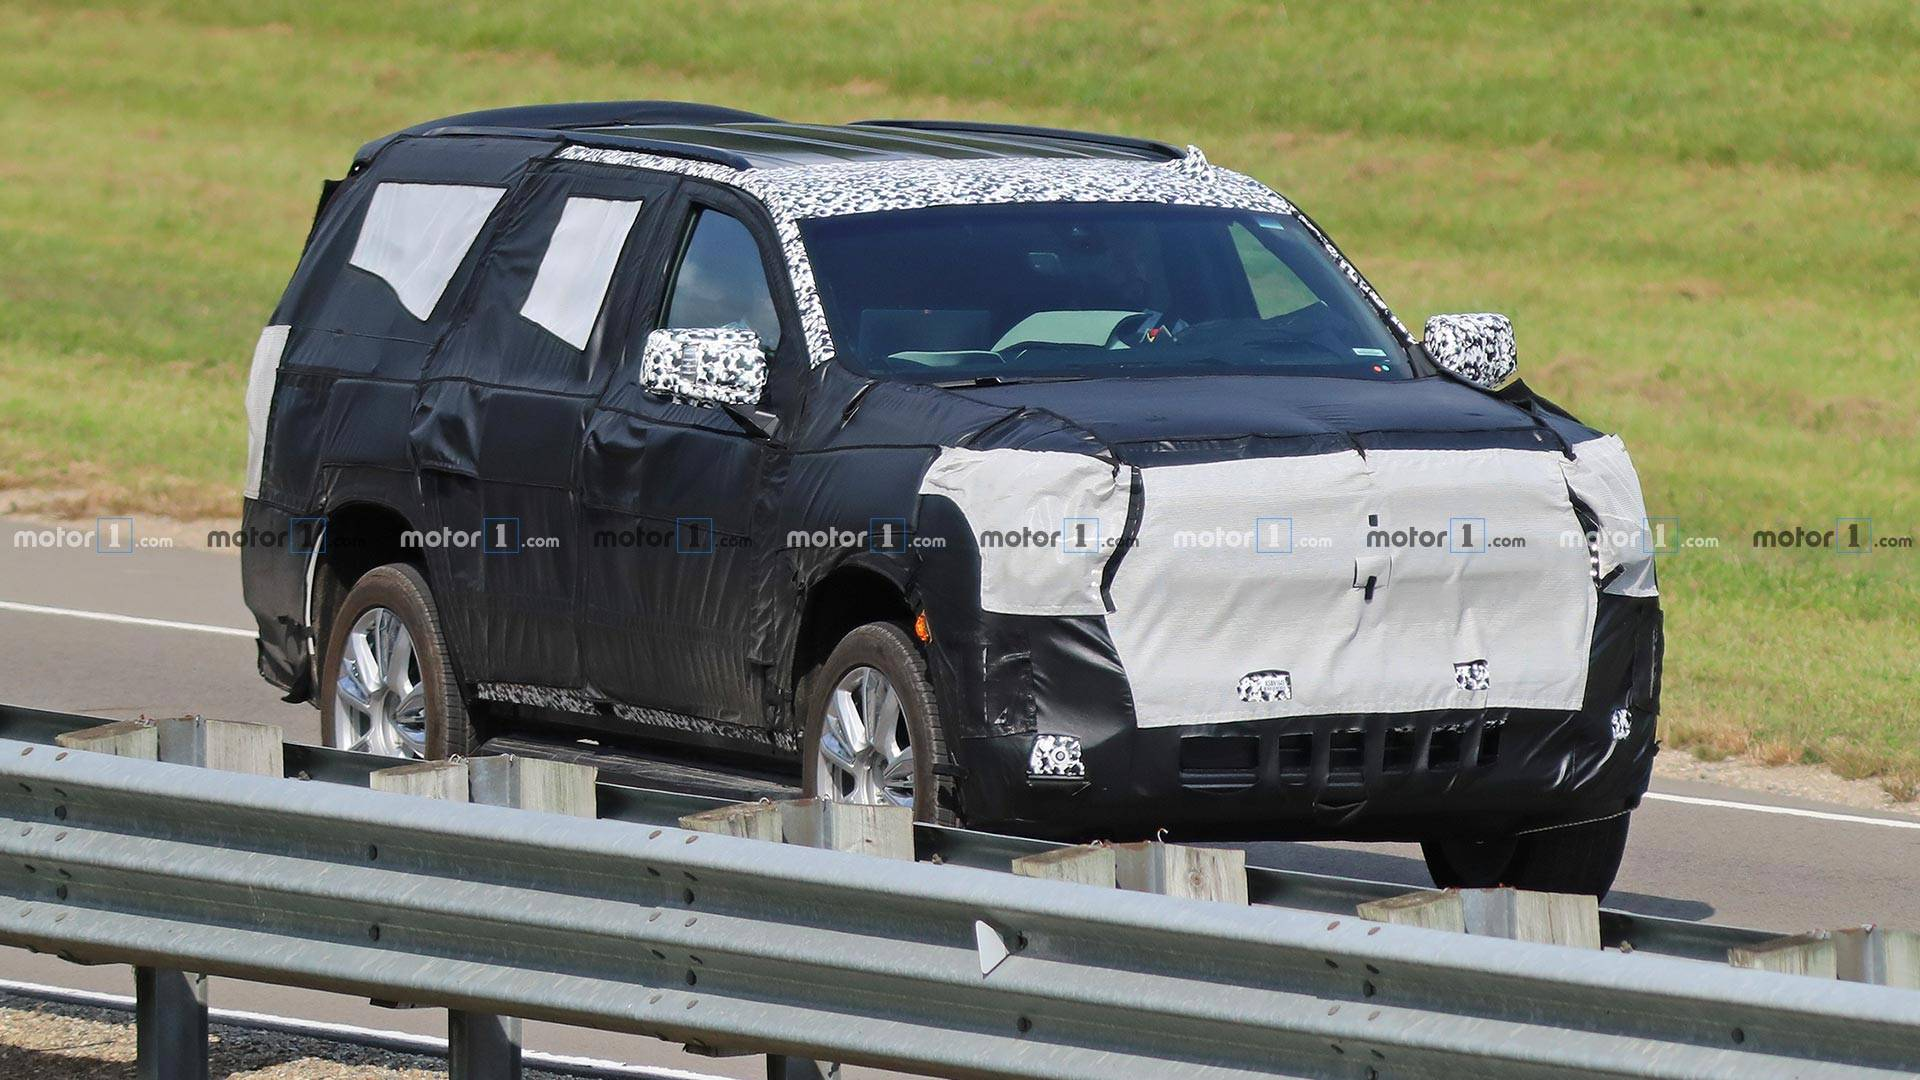 2021 Chevrolet Tahoe And Suburban Could Be Next-gen Models >> 2021 Chevy Tahoe To Get Independent Rear Suspension Report